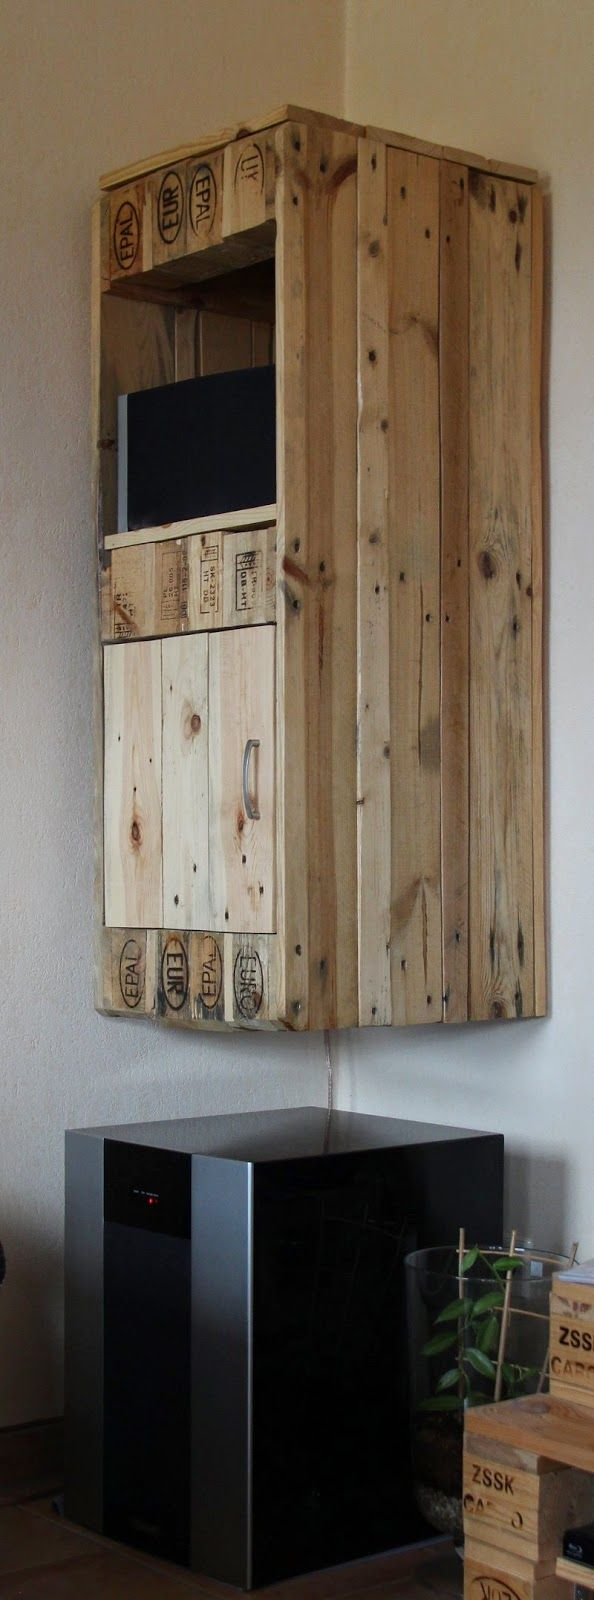 h ngeschrank aus europaletten wall cupboard made from pallets upcycling europaletten. Black Bedroom Furniture Sets. Home Design Ideas